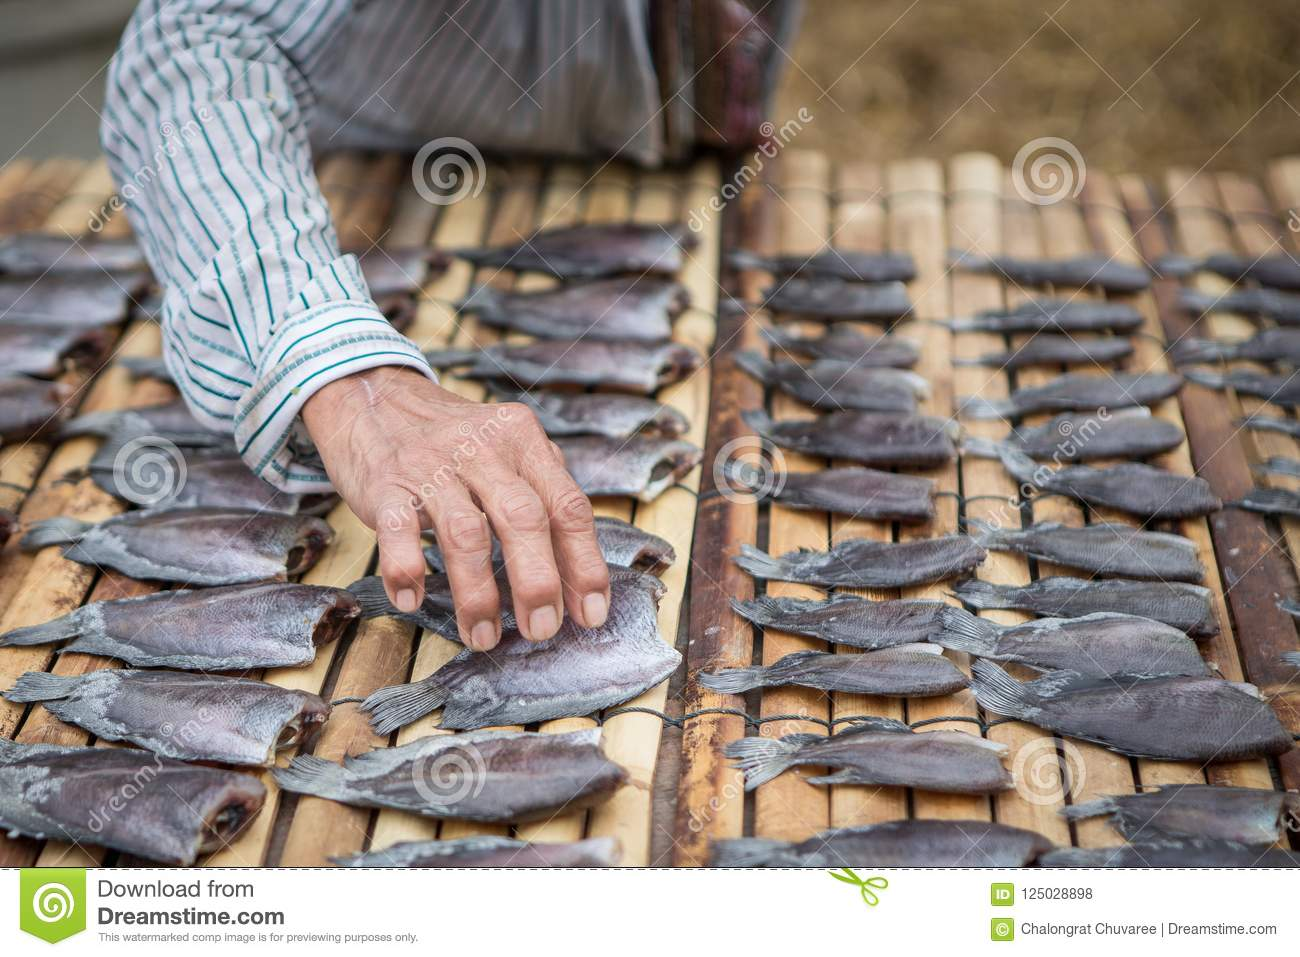 The hands keep the fish dry on a bamboo mat